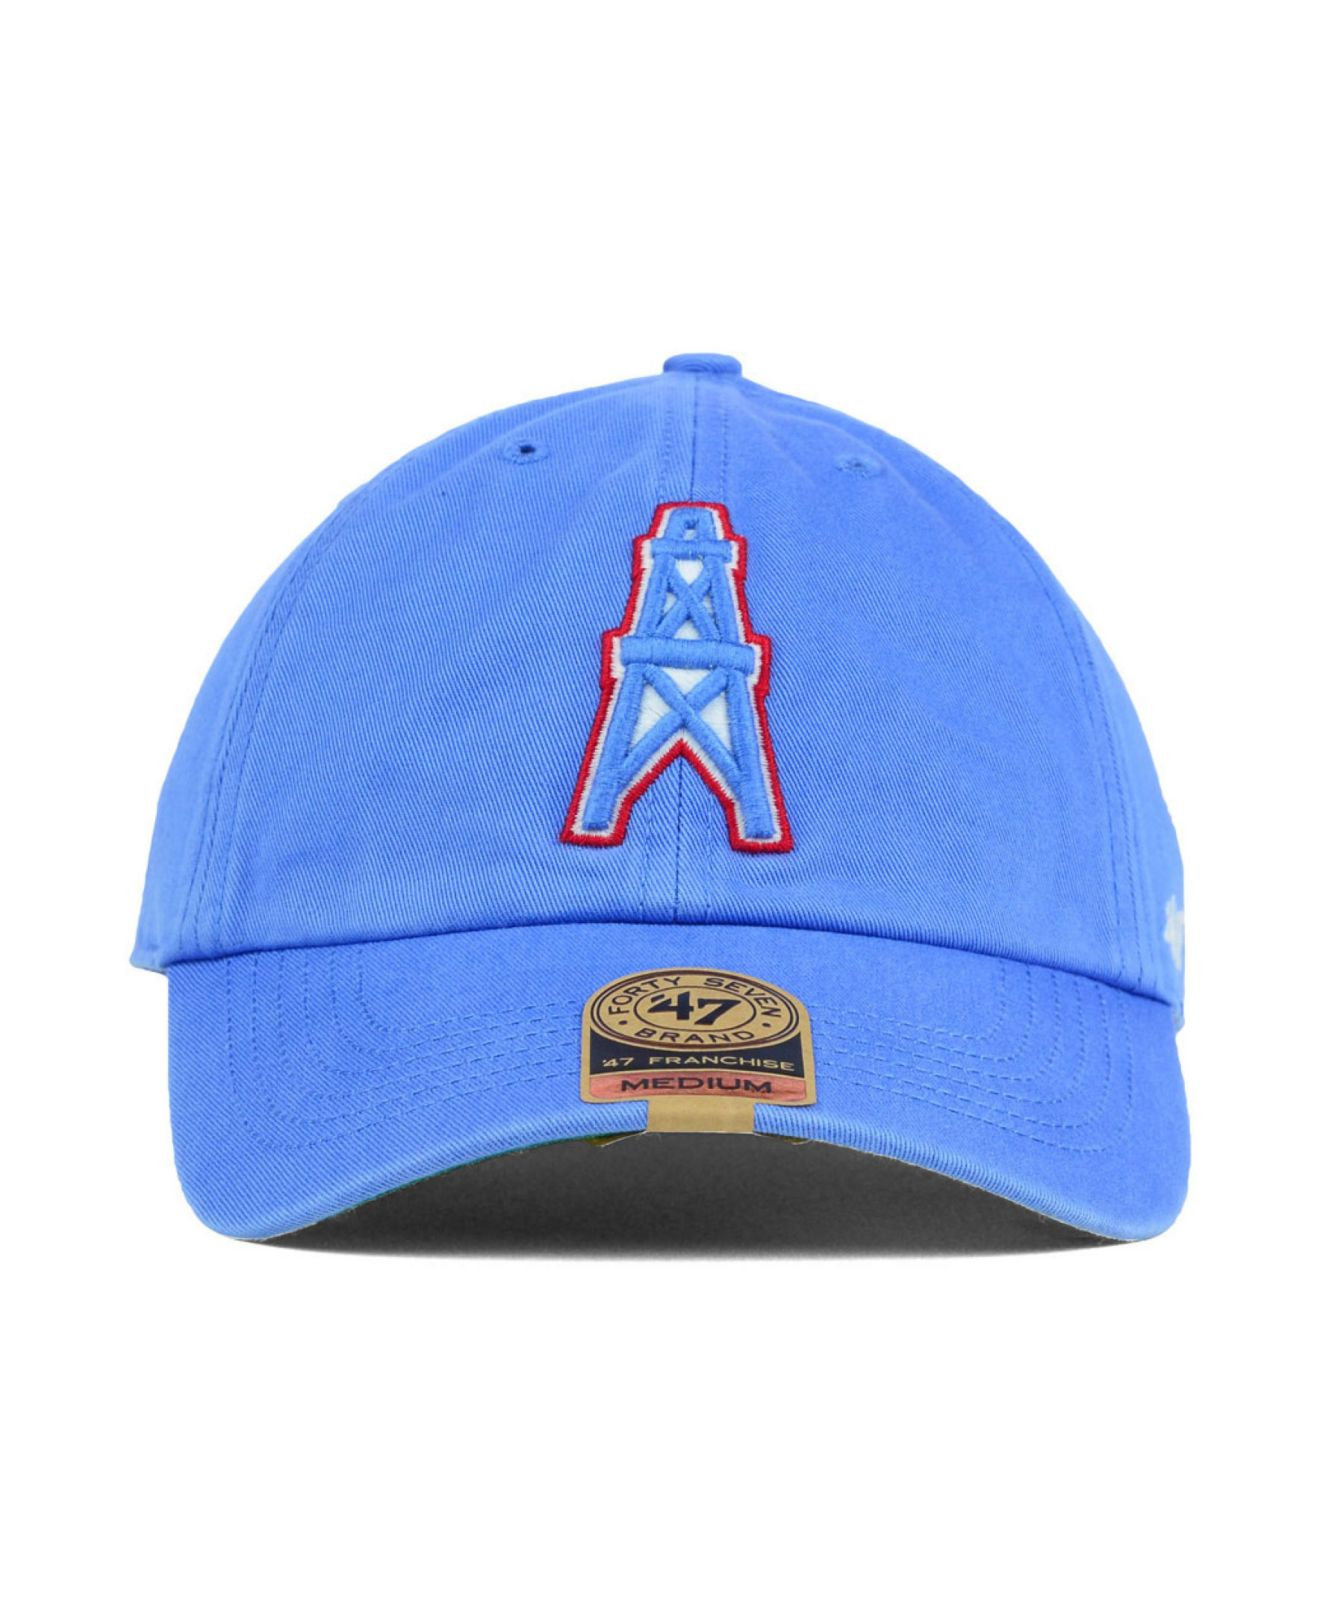 inexpensive houston new era 20666139 oilers nfl oatwood tan woodlandcamo  59fifty cap 3d106 dc4ef  ireland lyst 47 brand houston oilers franchise cap  in blue ... 0c74ecaf7